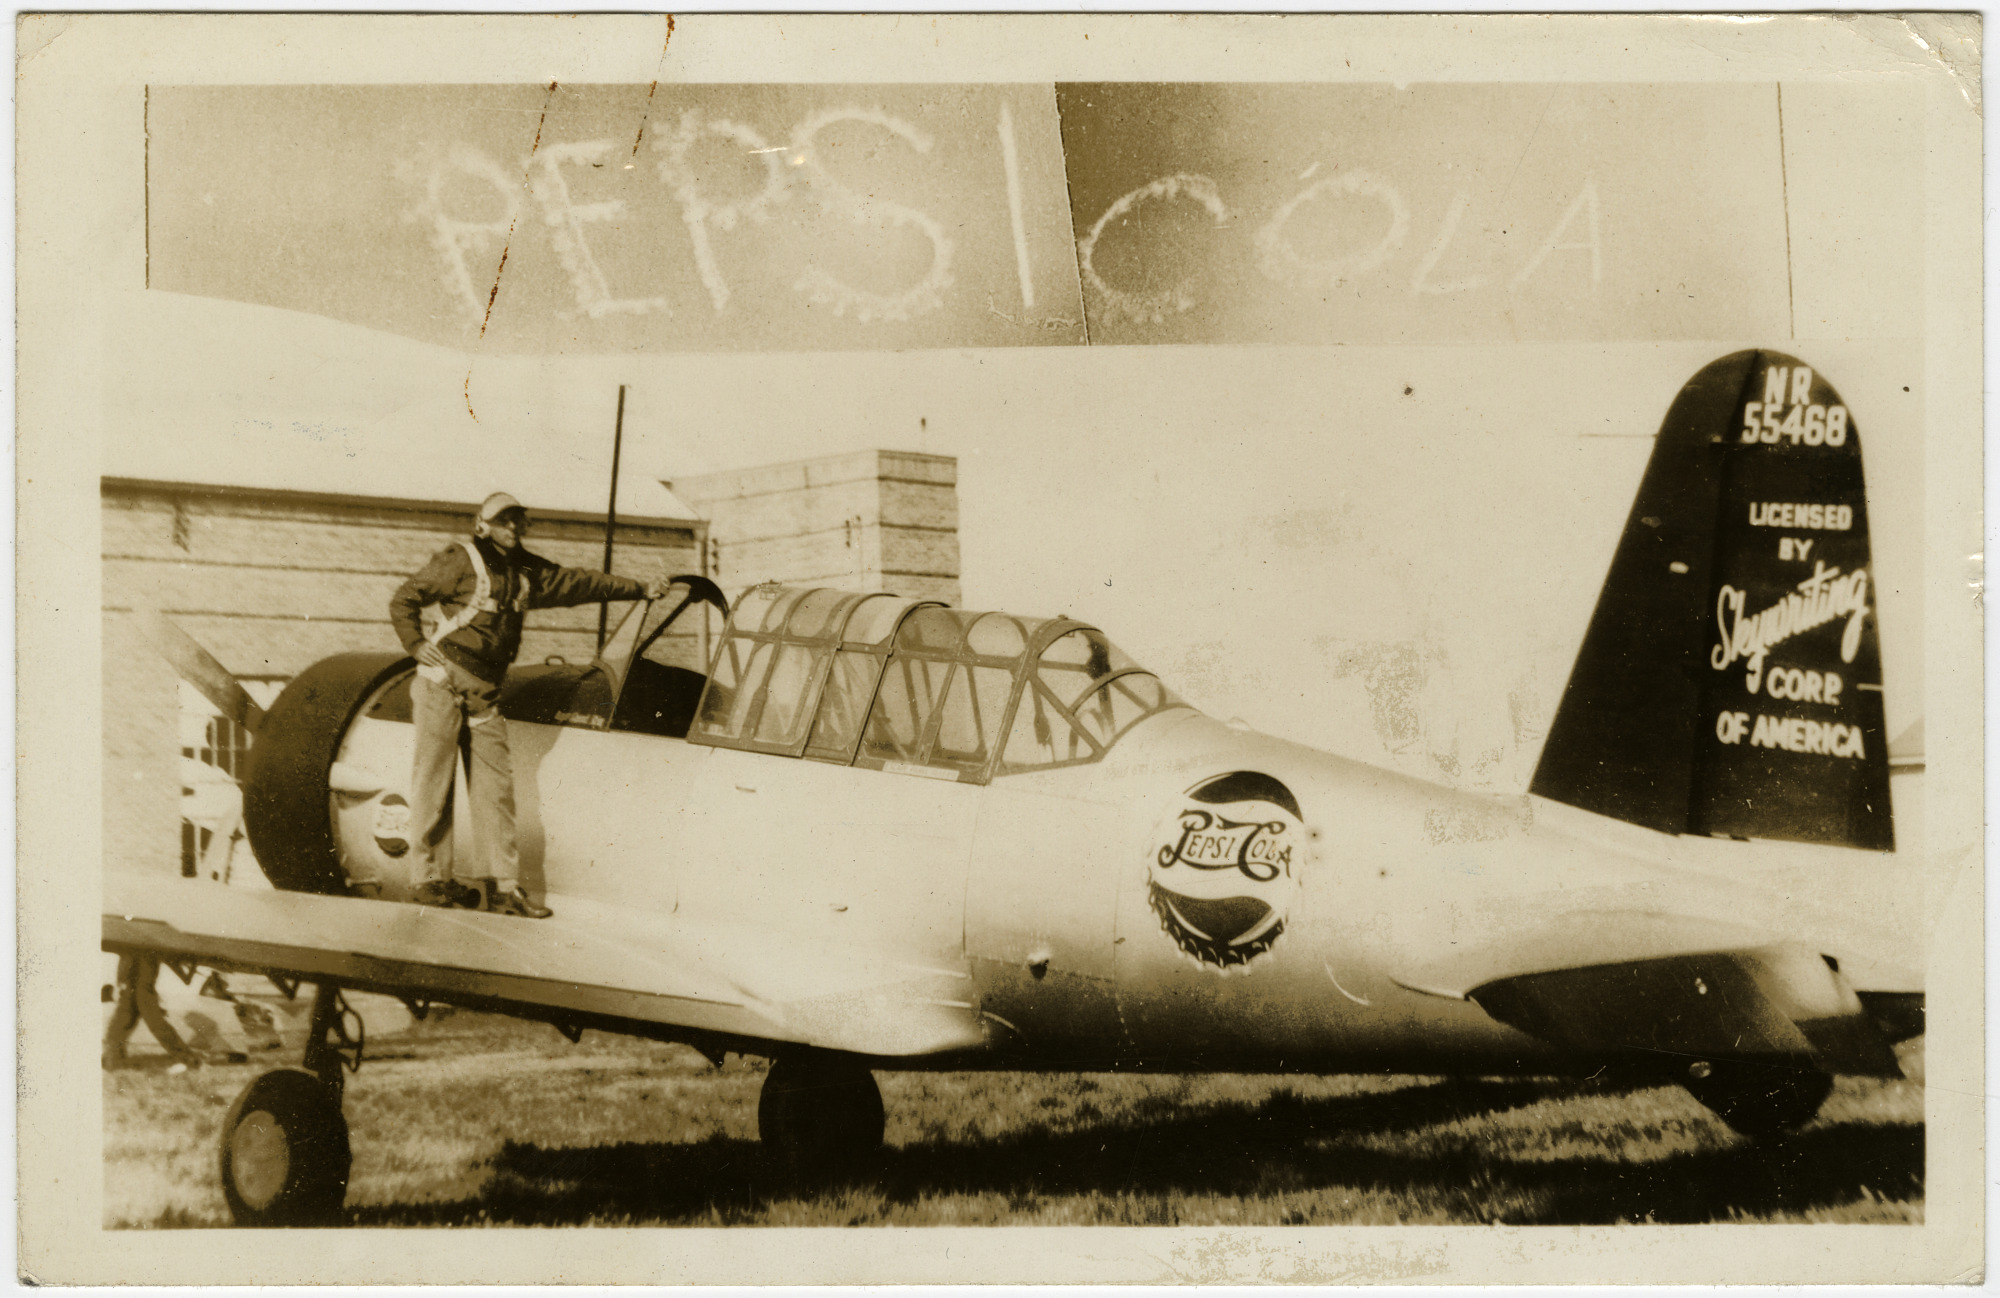 S. Sidney Pike Skywriting Corporation of America Collection